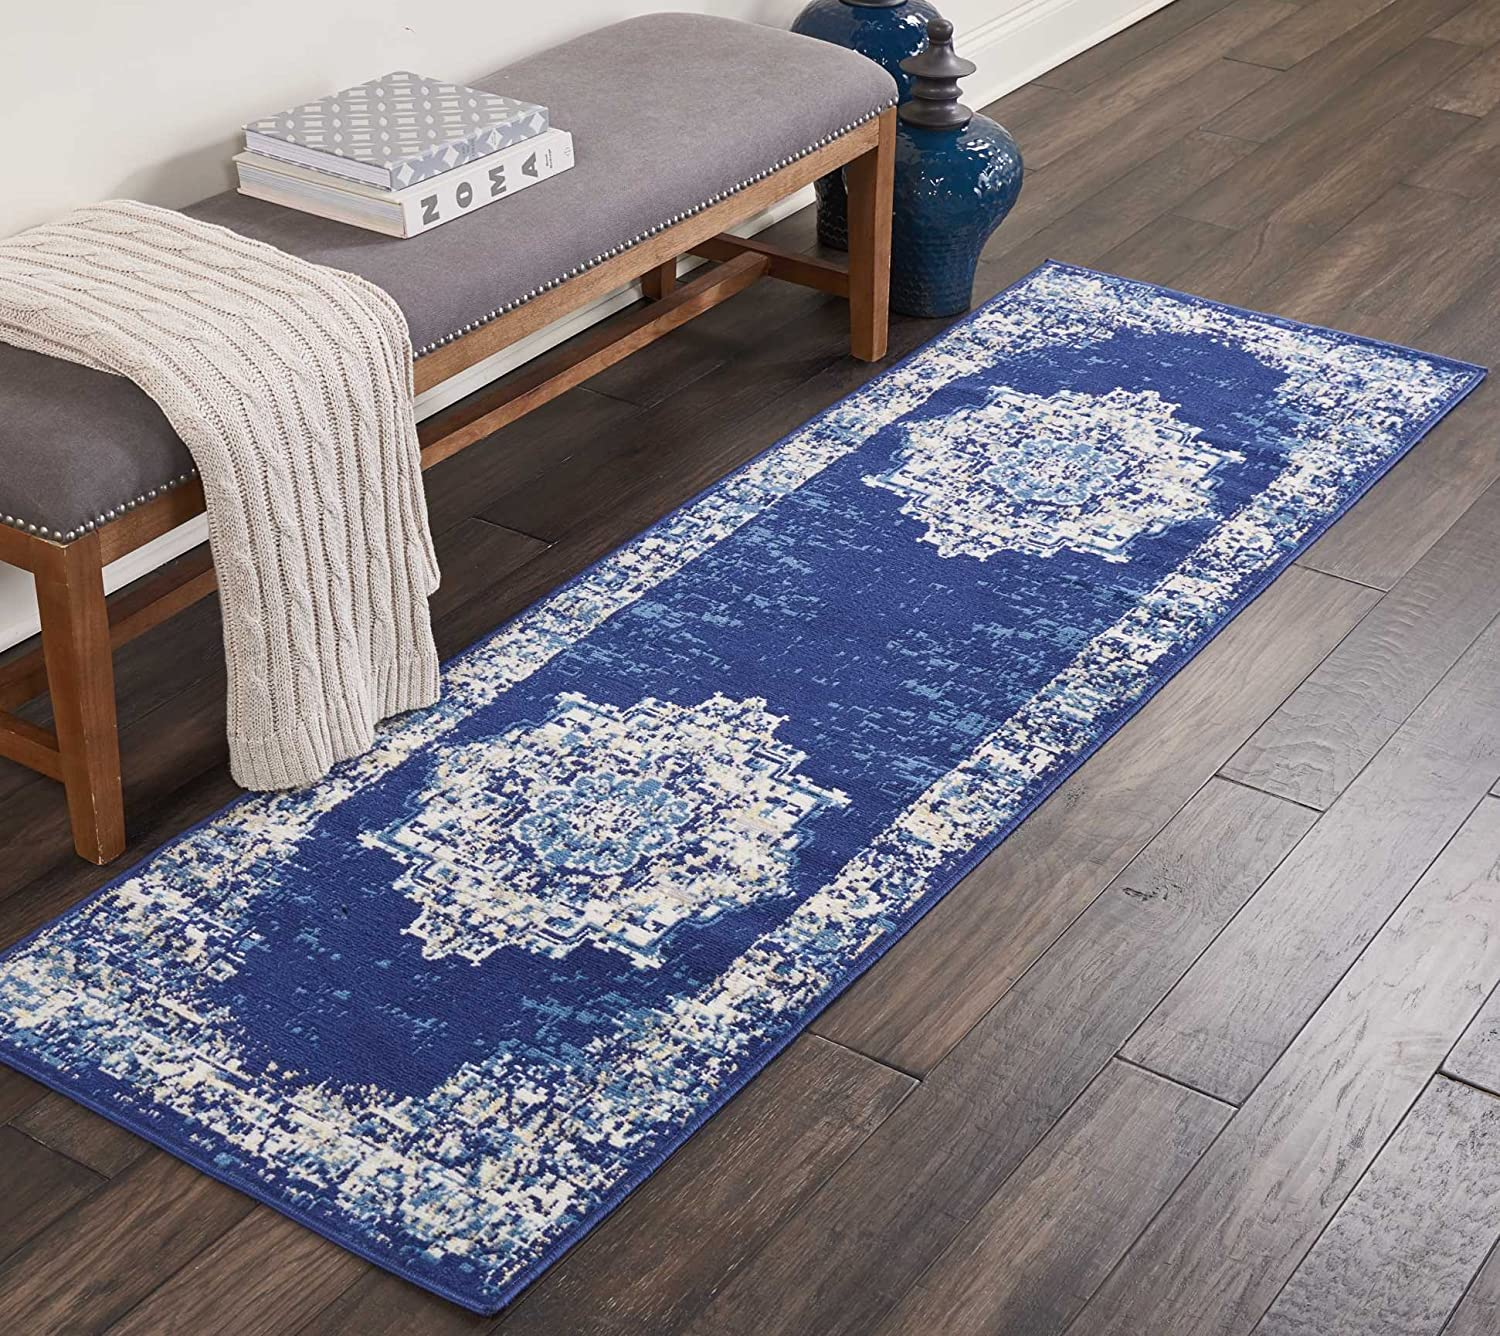 Nourison  Grafix Traditional Distressed Navy bluee Area Rug Runner 2'3  x 7'6